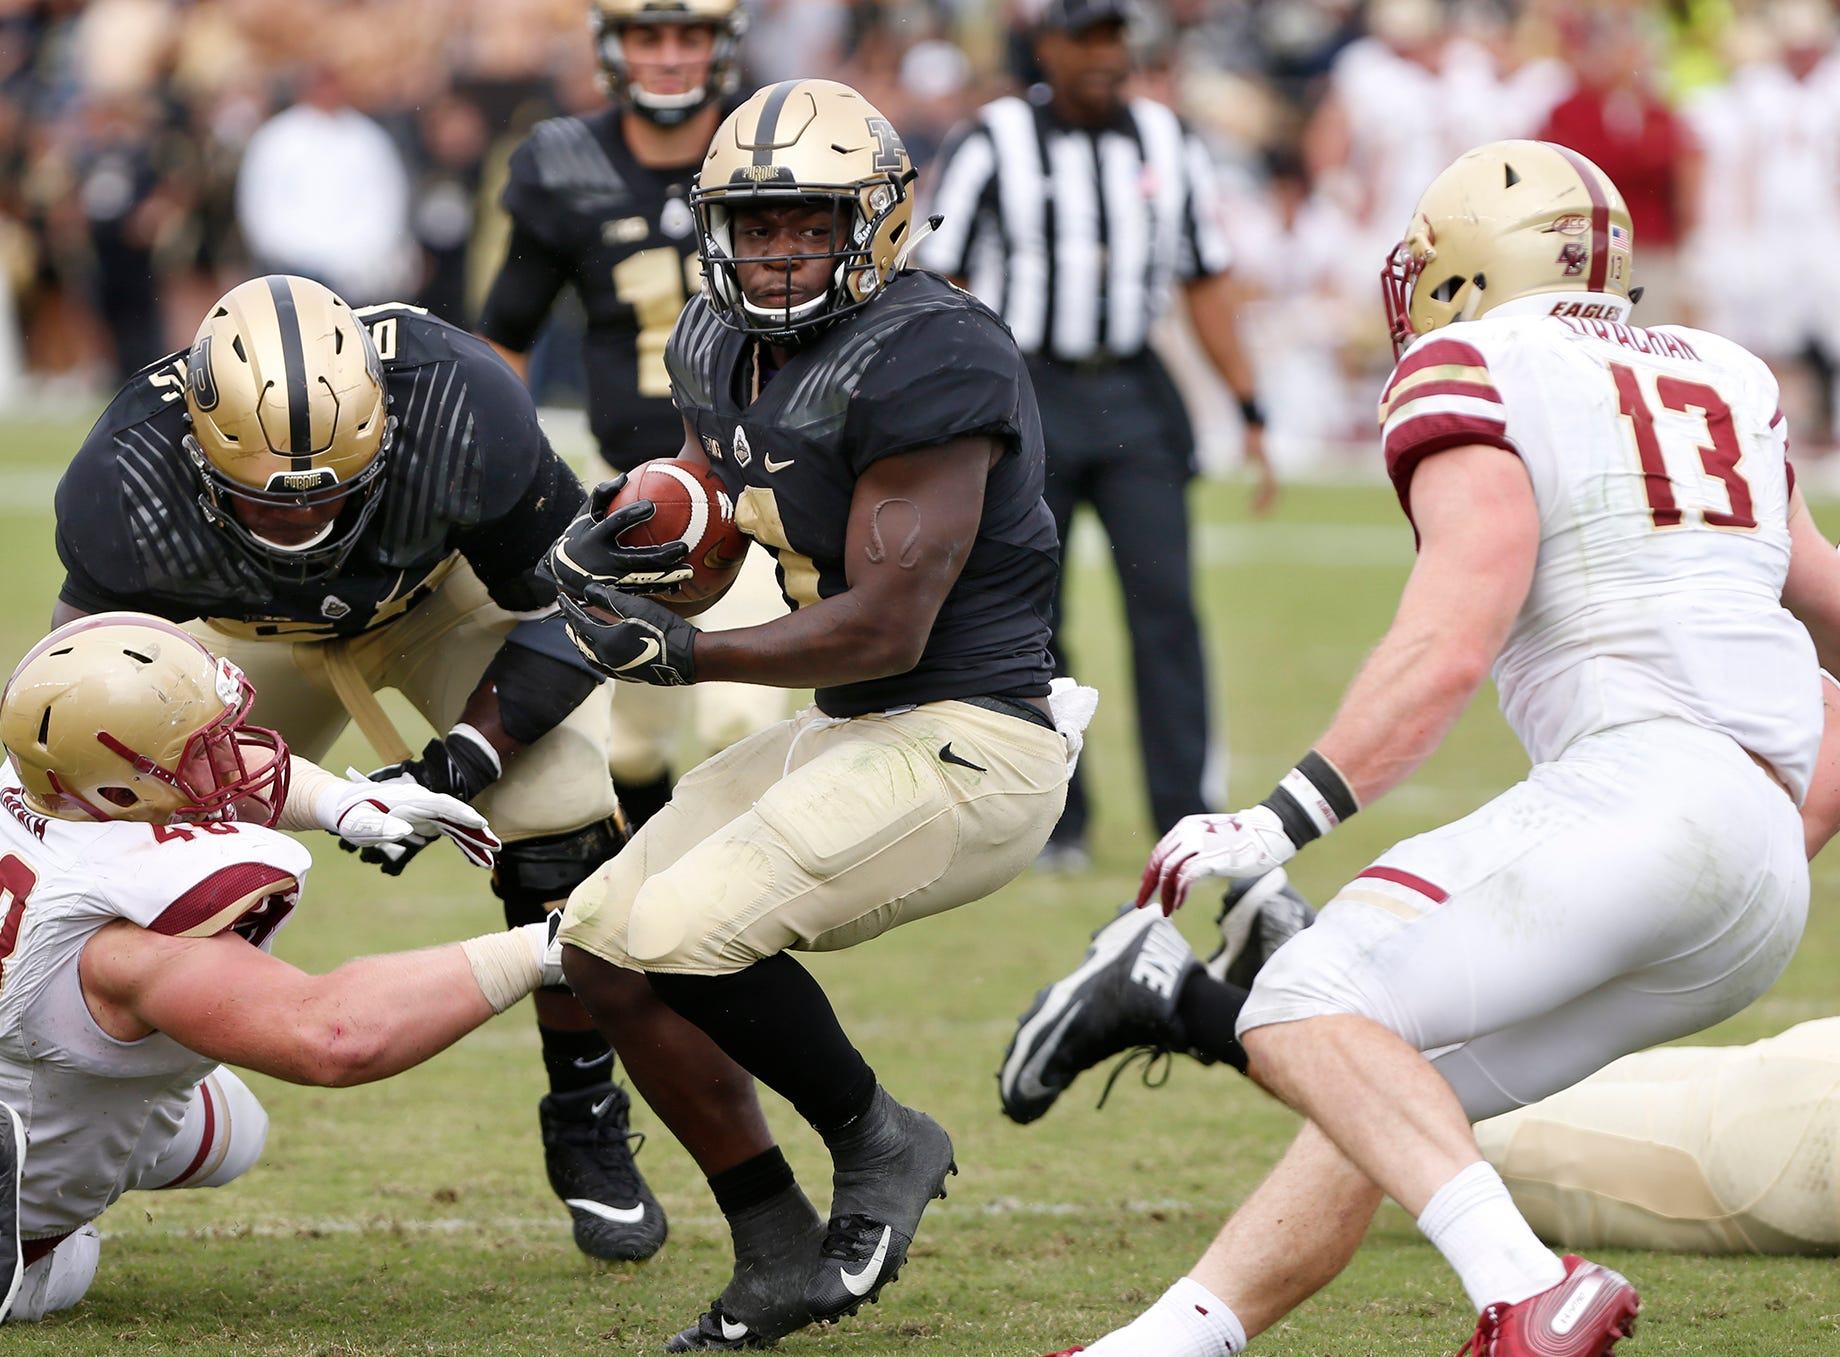 D. J. Knox of Purdue with a second half carry against Boston College Saturday, September 22, 2018, in Ross-Ade Stadium. Purdue defeated Boston College 30-13.